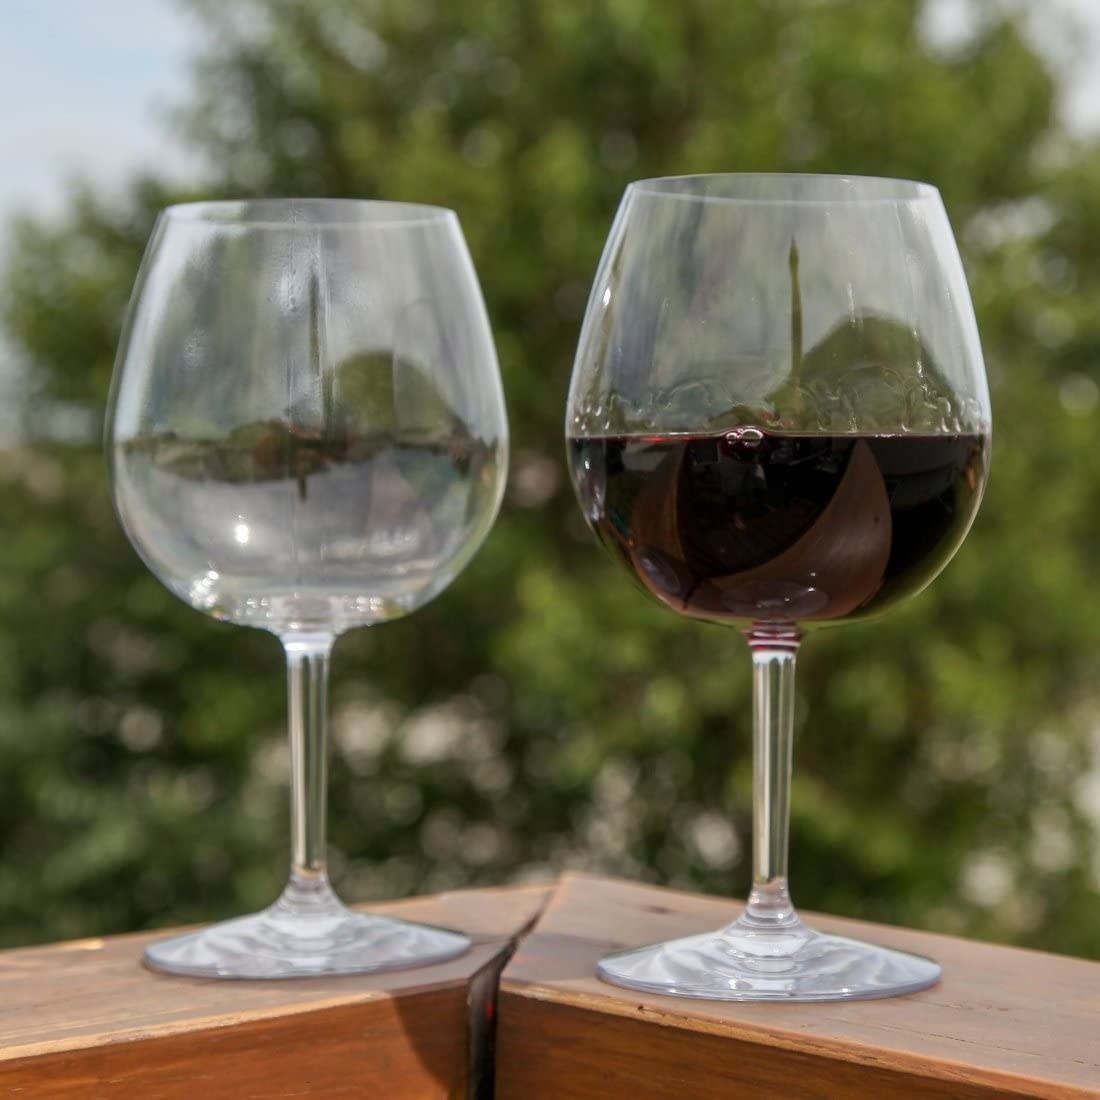 A close-up of the two balloon glasses where one is half-full of wine